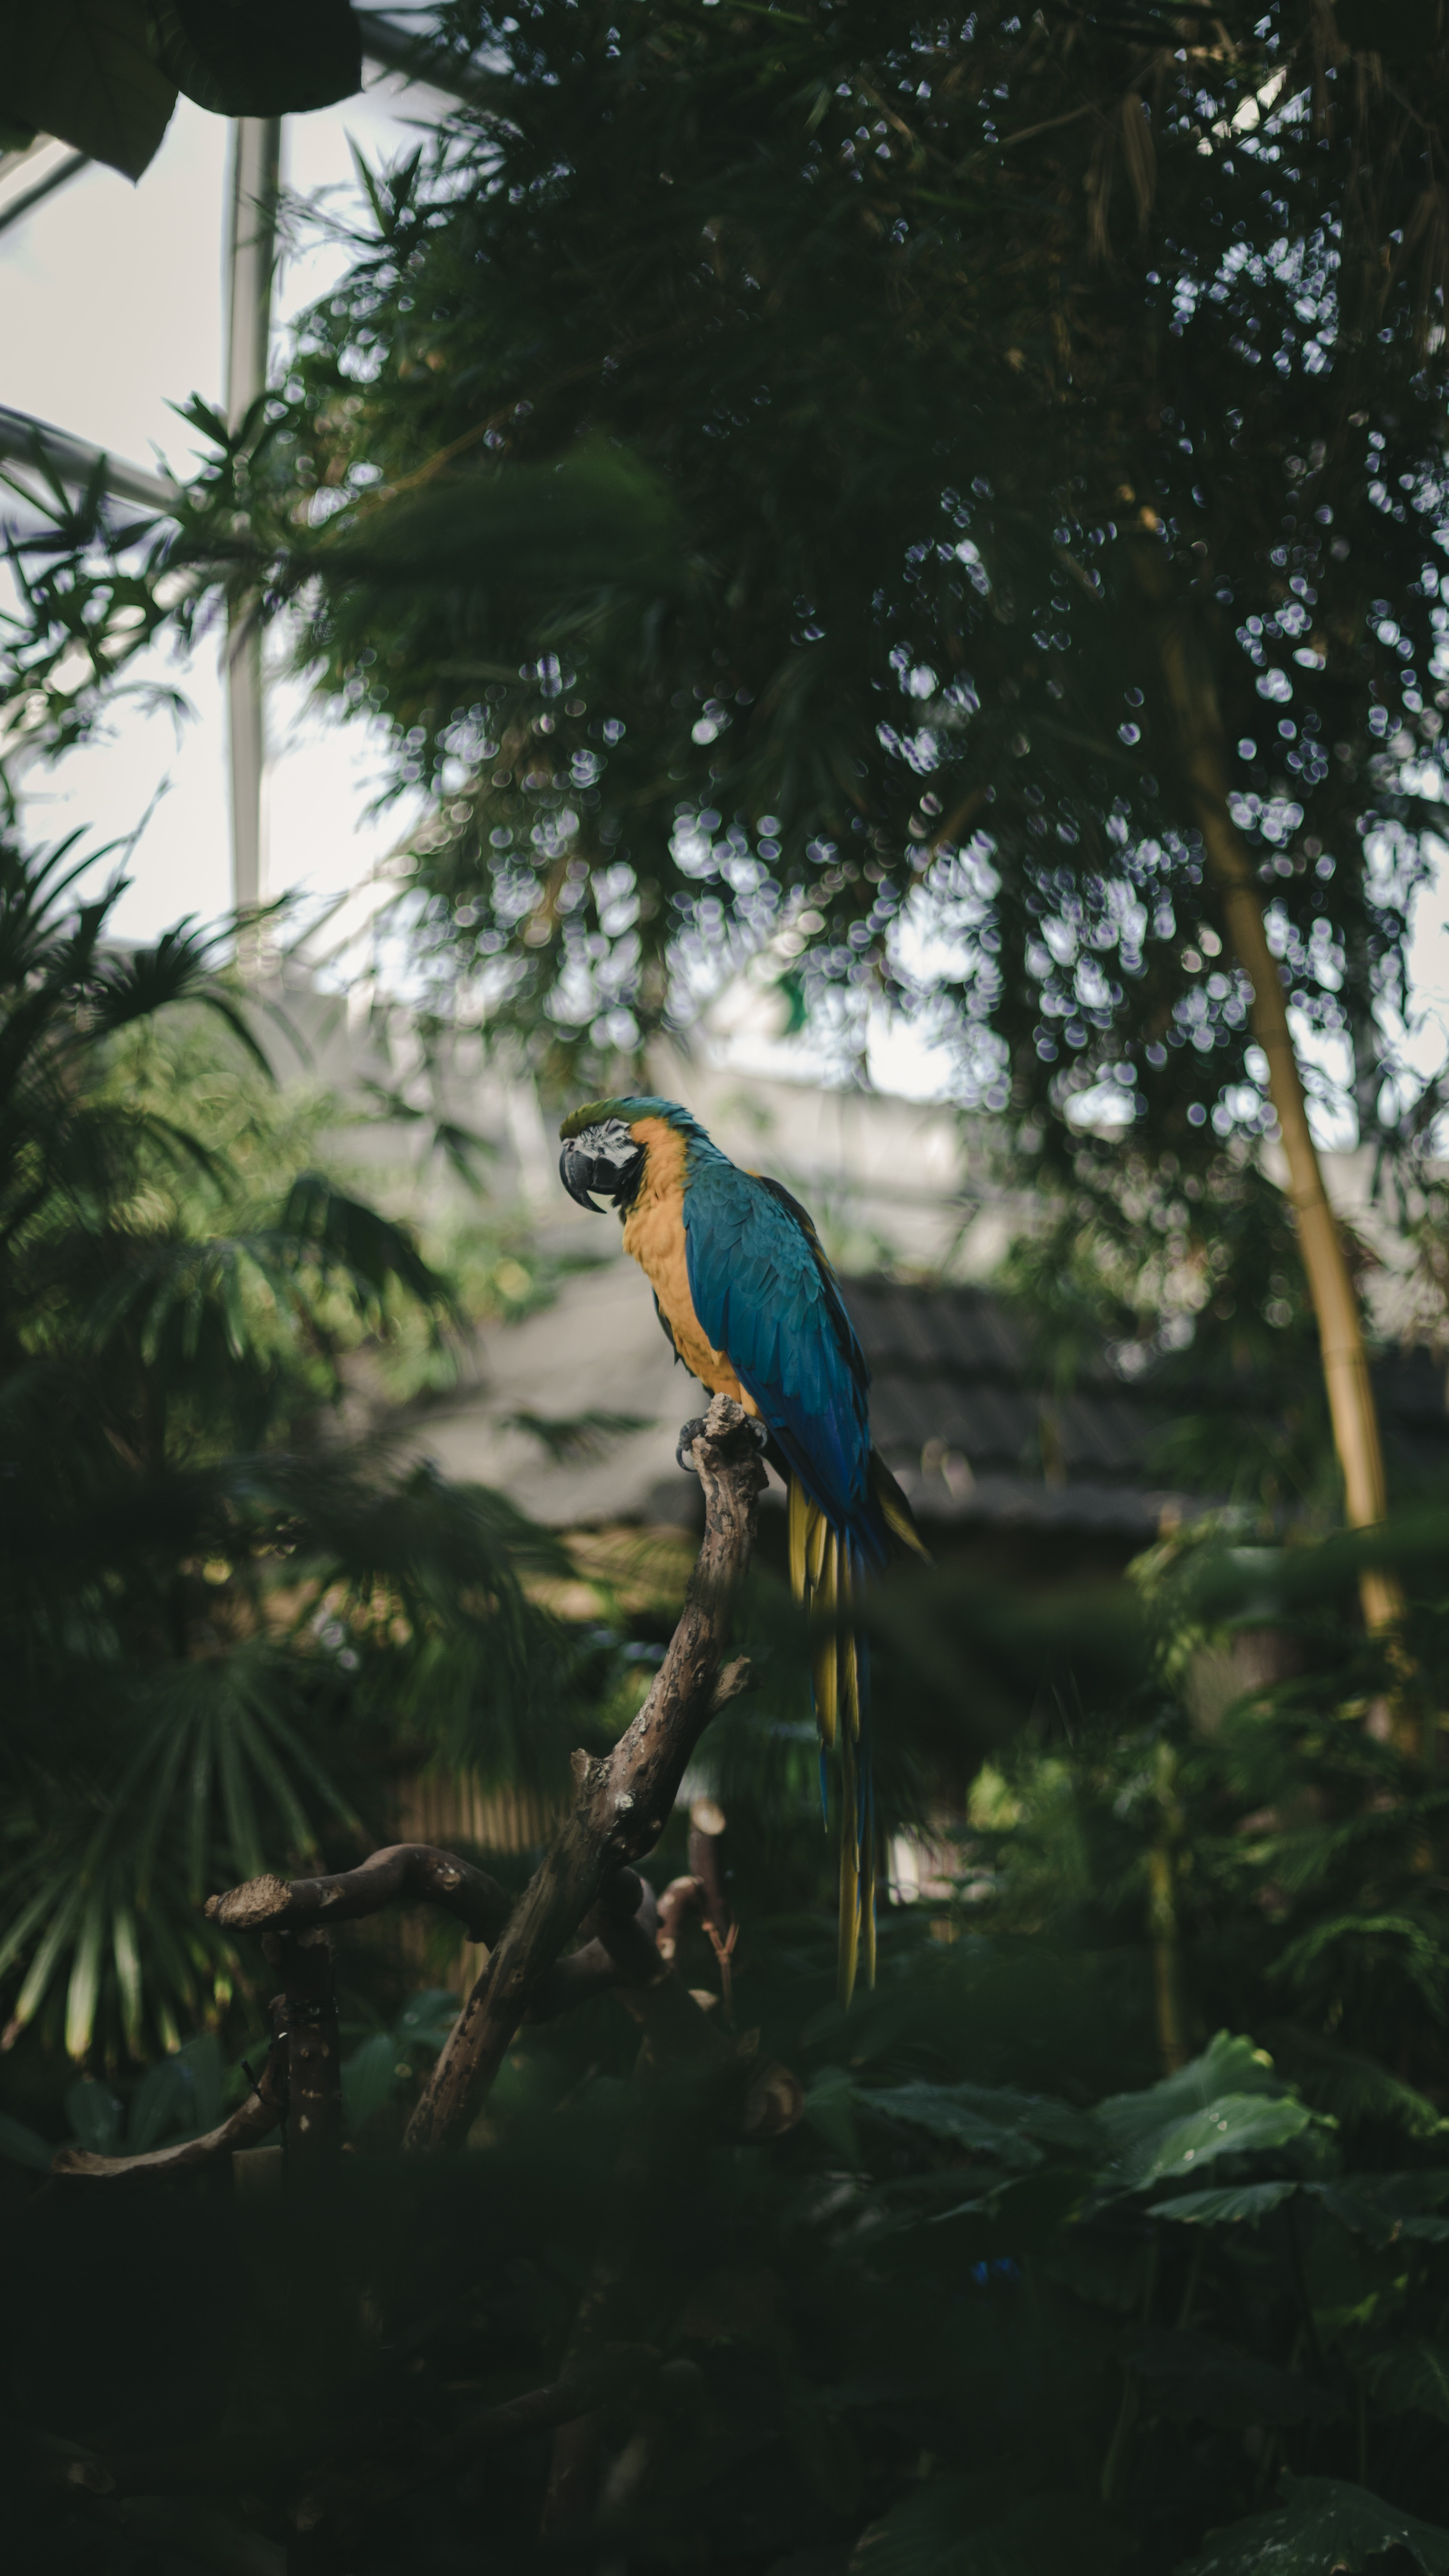 115532 Screensavers and Wallpapers Parrots for phone. Download Animals, Parrots, Palms, Bird, Color, Tropics, Coloured, Jungle, Macaw pictures for free